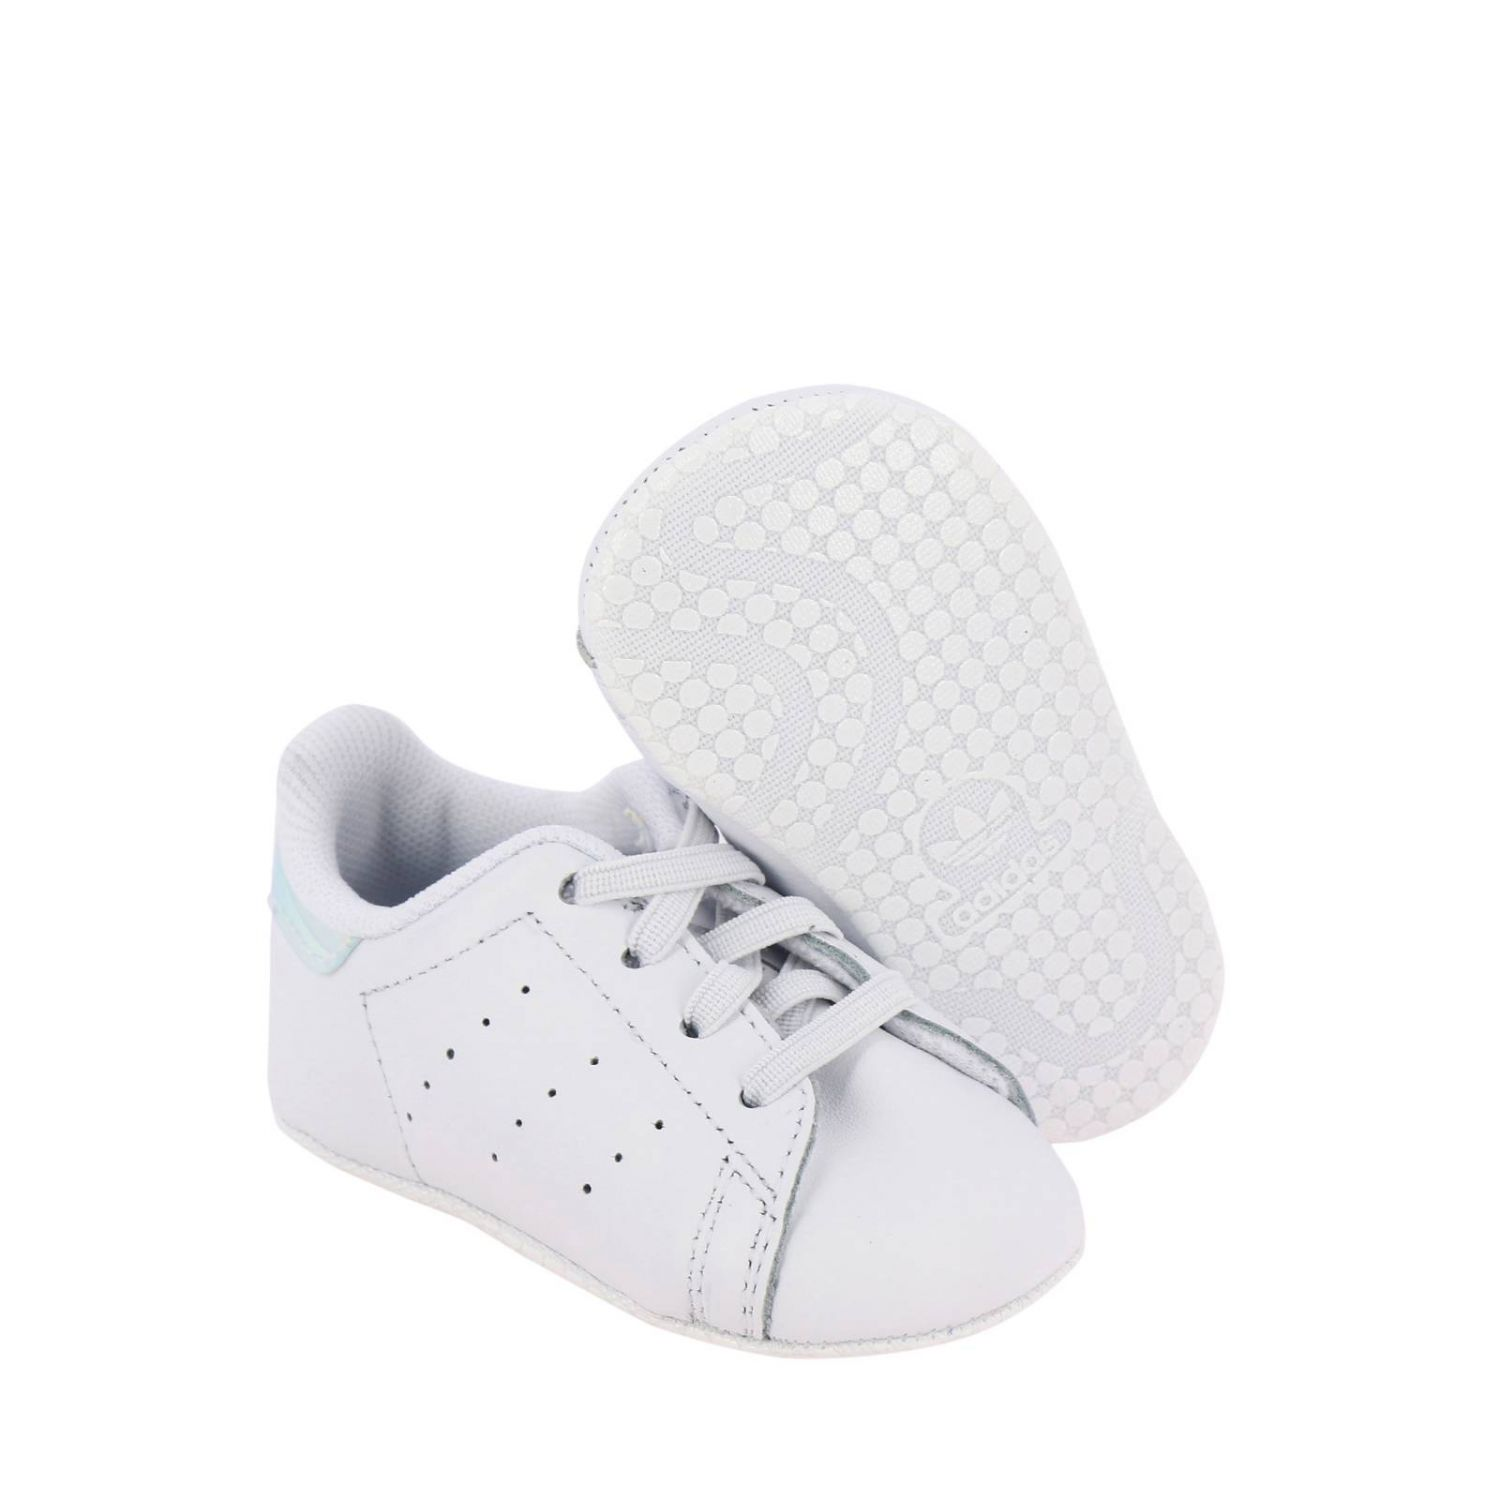 Shoes Adidas Originals: Stan Smith Crib Adidas Originals Sneakers in leather with mirrored heel white 2